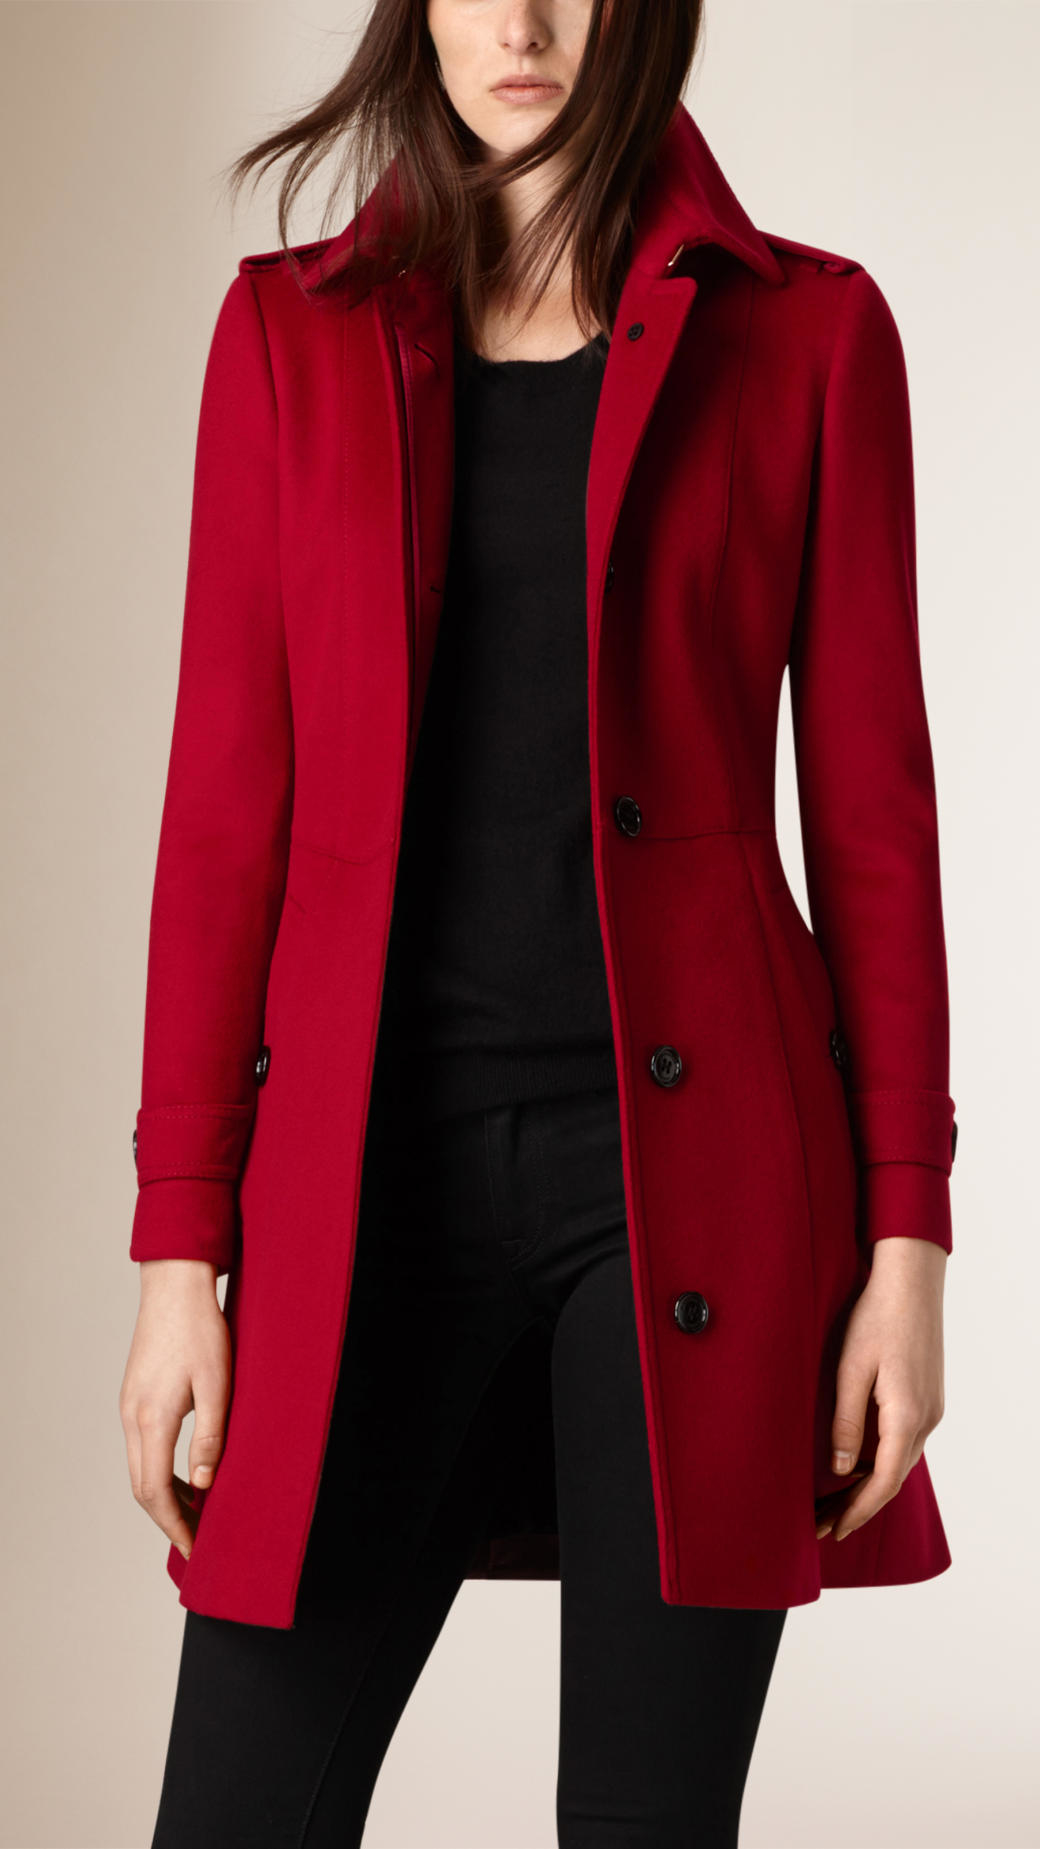 Burberry Pleat Detail Wool Cashmere Trench Coat in Red | Lyst